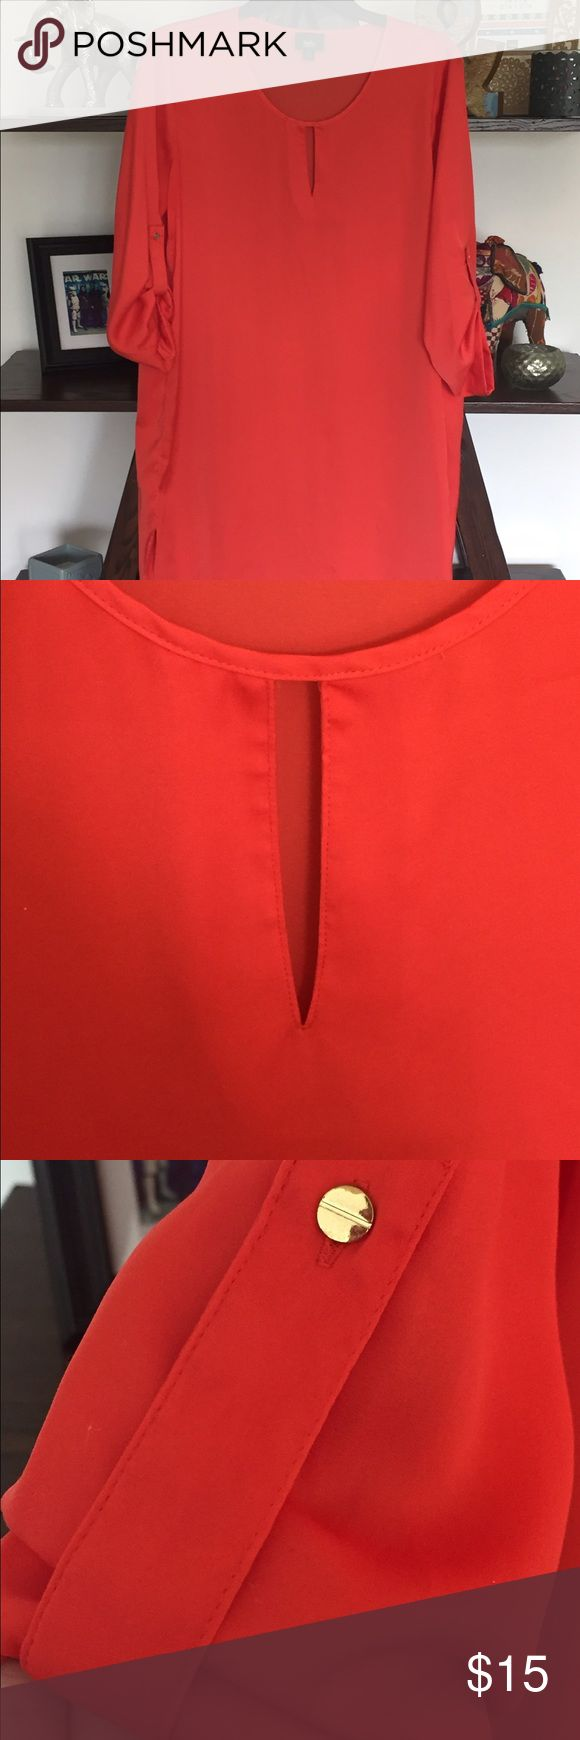 Bright Red Tunic/Dress Red tunic dress. Can be worn straight as a shift style dress or with a belt to be more fitted. 3/4 length sleeves with button loop (can be unattached). Small V cutout in front and rounded hem line. EUC only worn once Mossimo Supply Co Tops Tunics